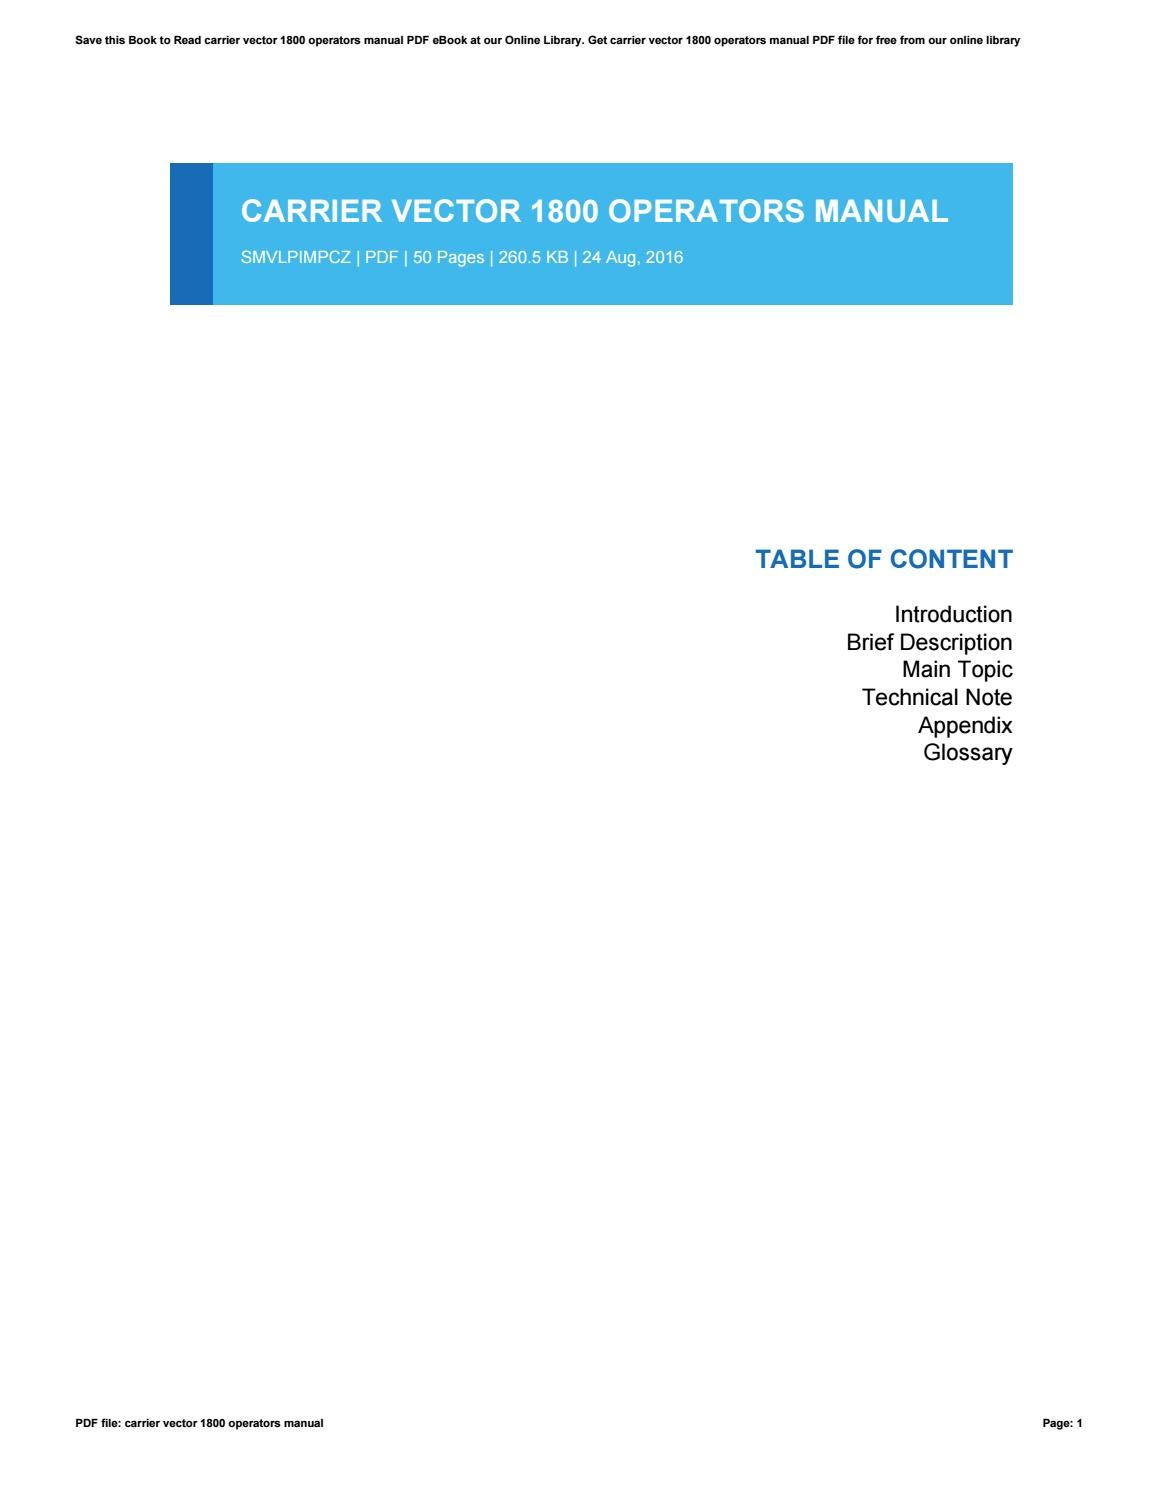 carrier vector 1800 operators manual by sandravanhorn3871 issuu rh issuu com manual carrier vector 1550 manual carrier vector